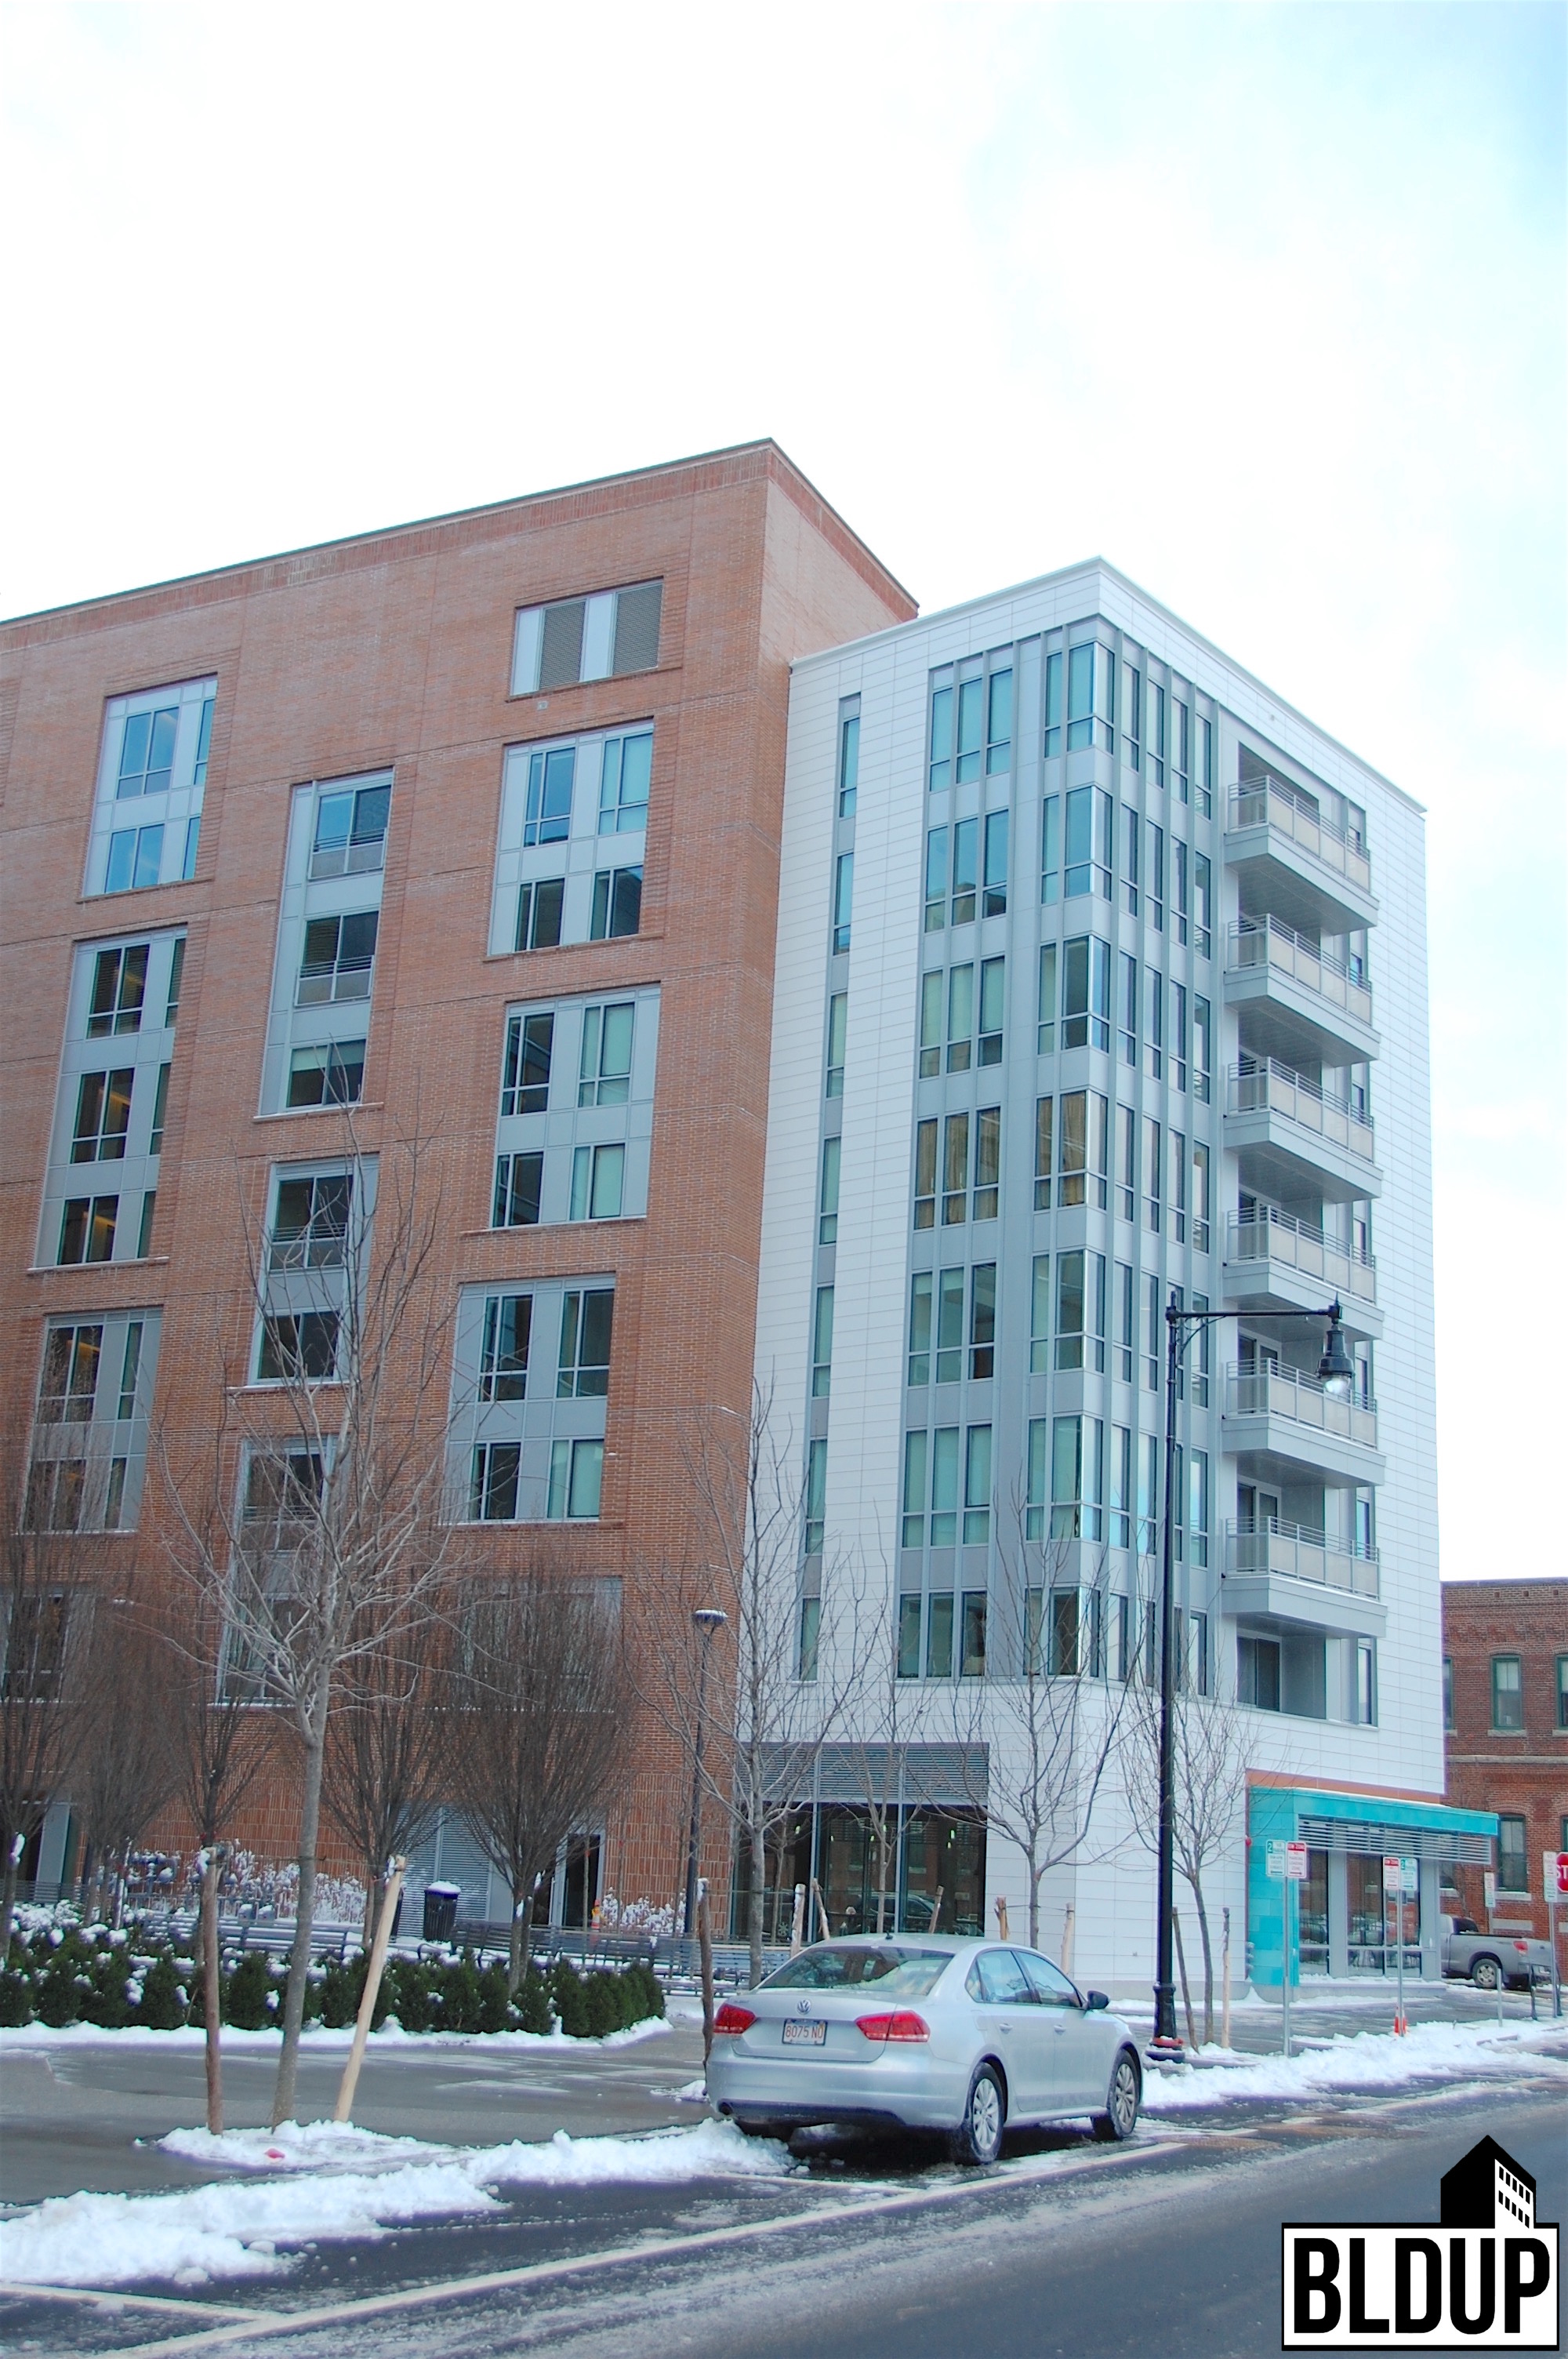 Vivo apartments 270 third street binney street kendall square residential units cambridge cambma gilbane building company construction alexandria real estate equities portfolio developer dimella shaffer architect wsp group engineer 5